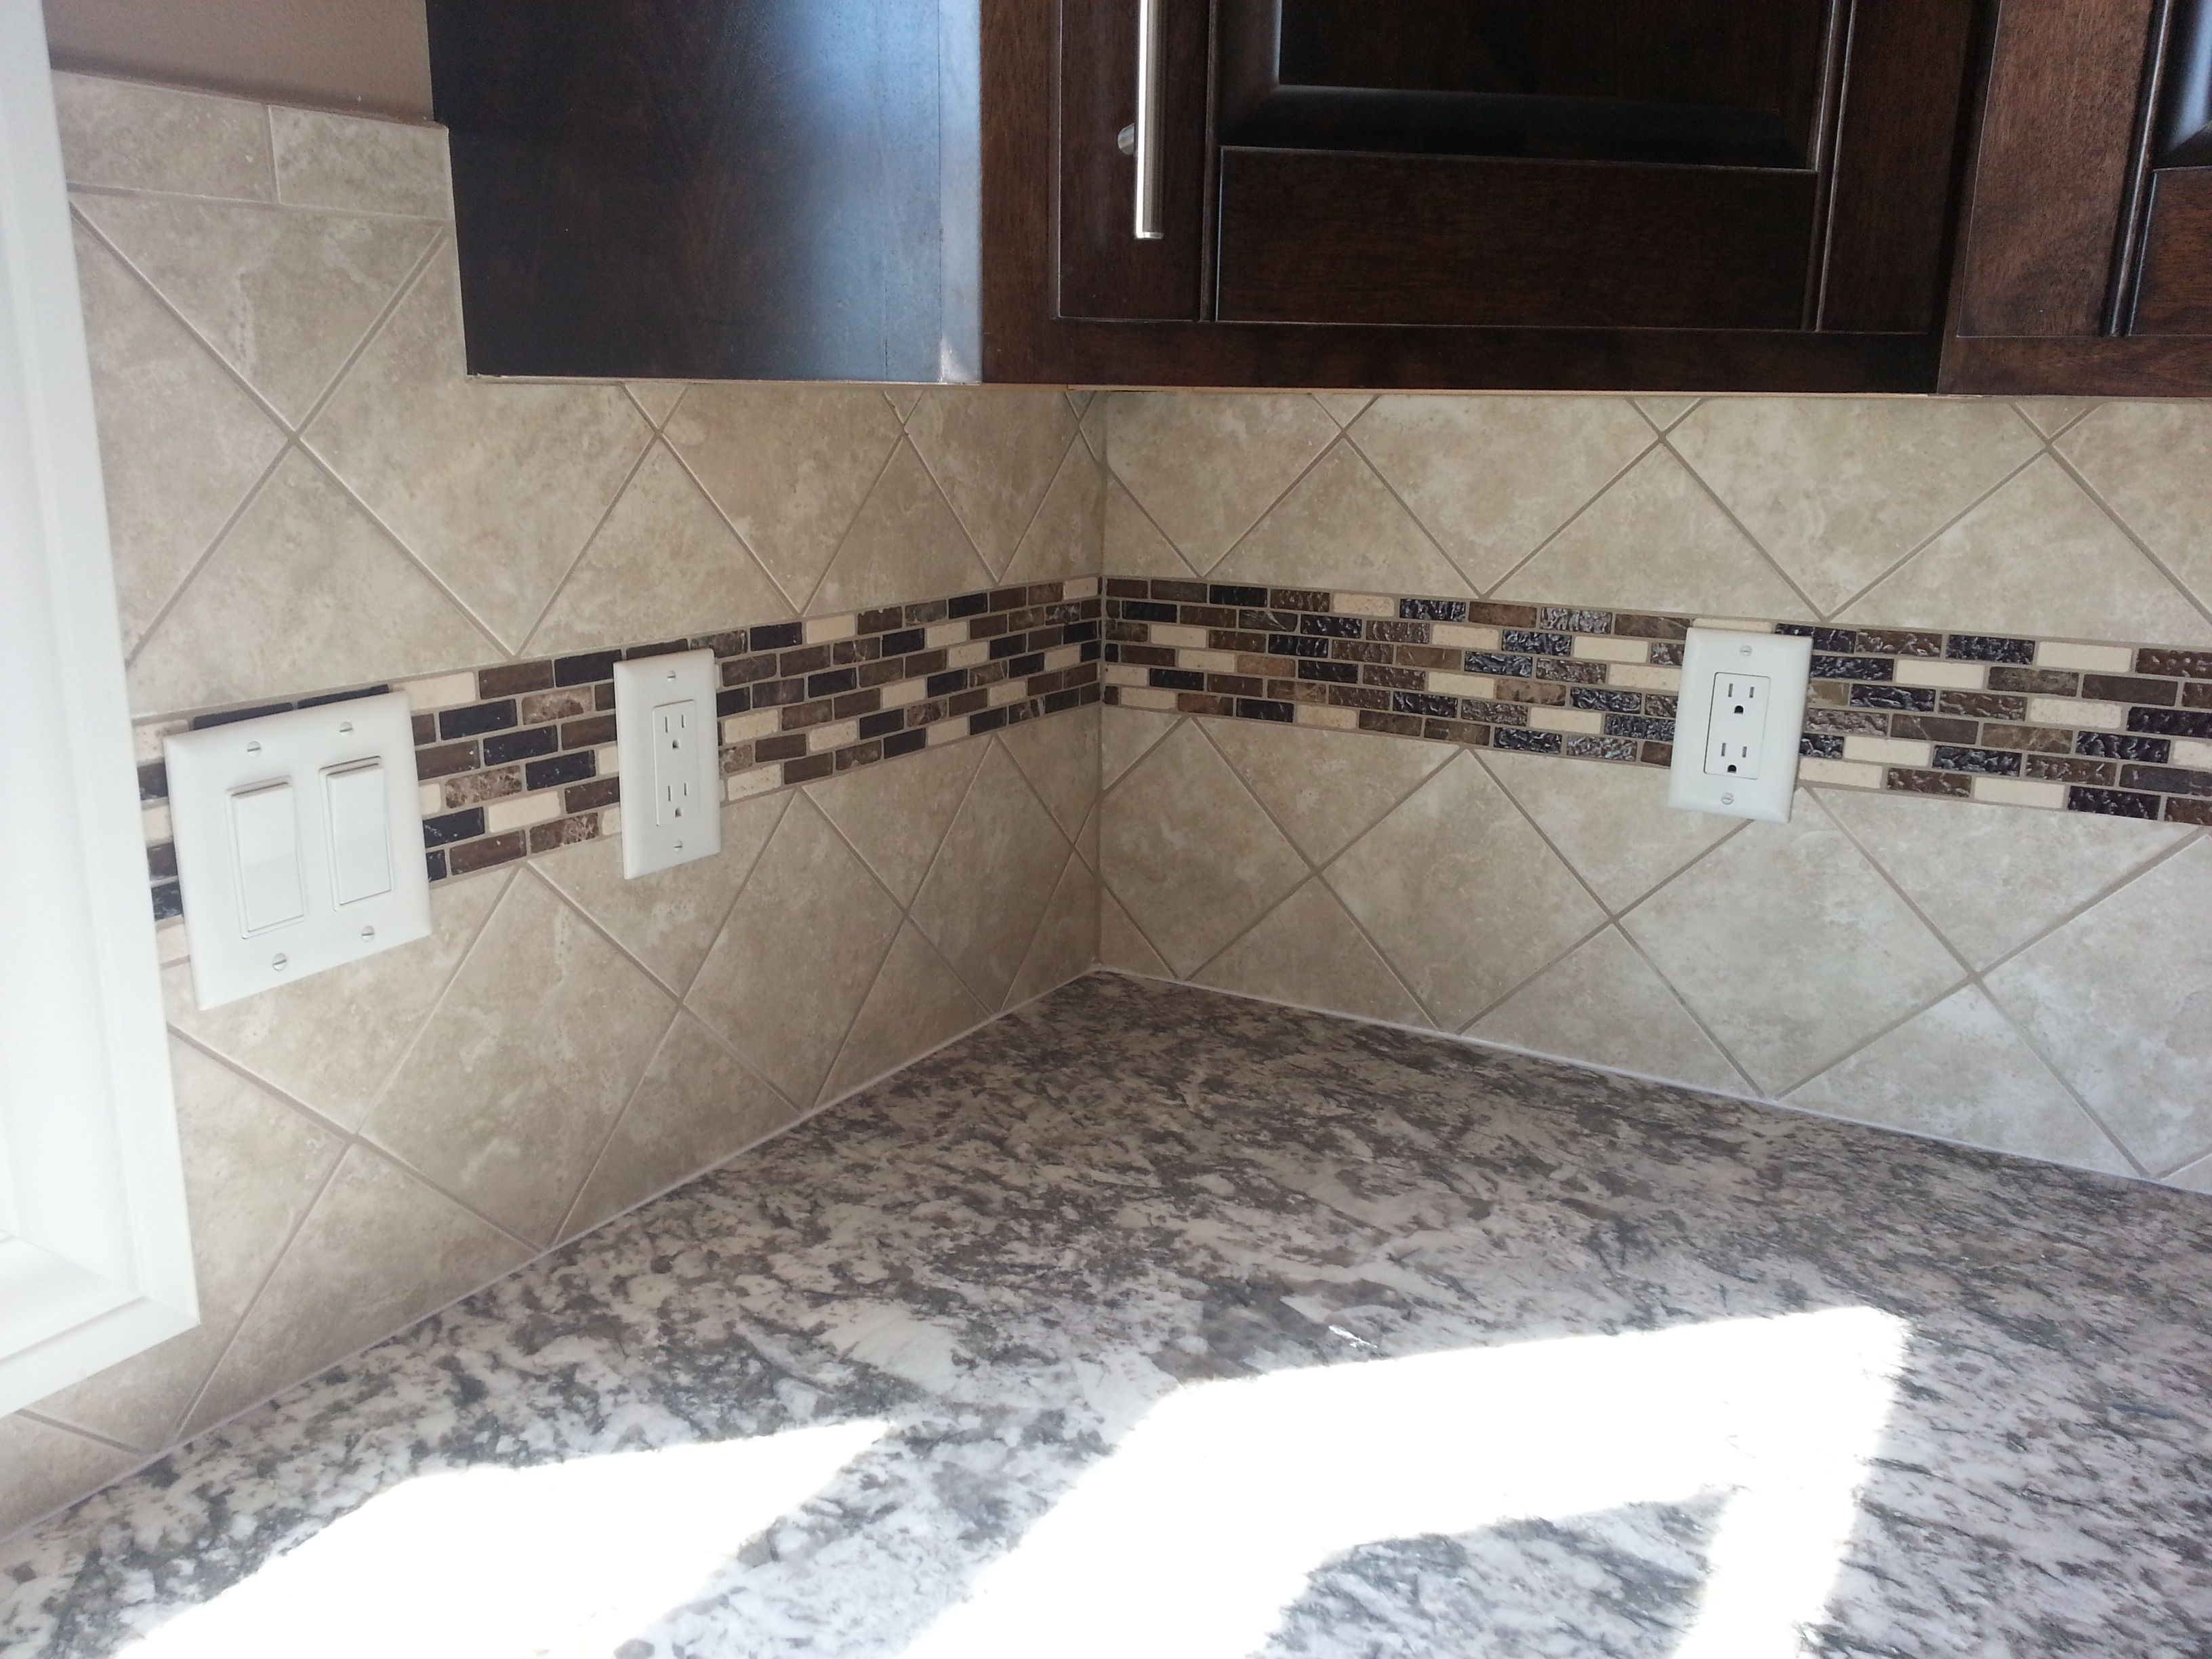 Decorative Tile Accents 4X4 Tile Backsplash Set At An Diagonal With An Accent Stripe Going